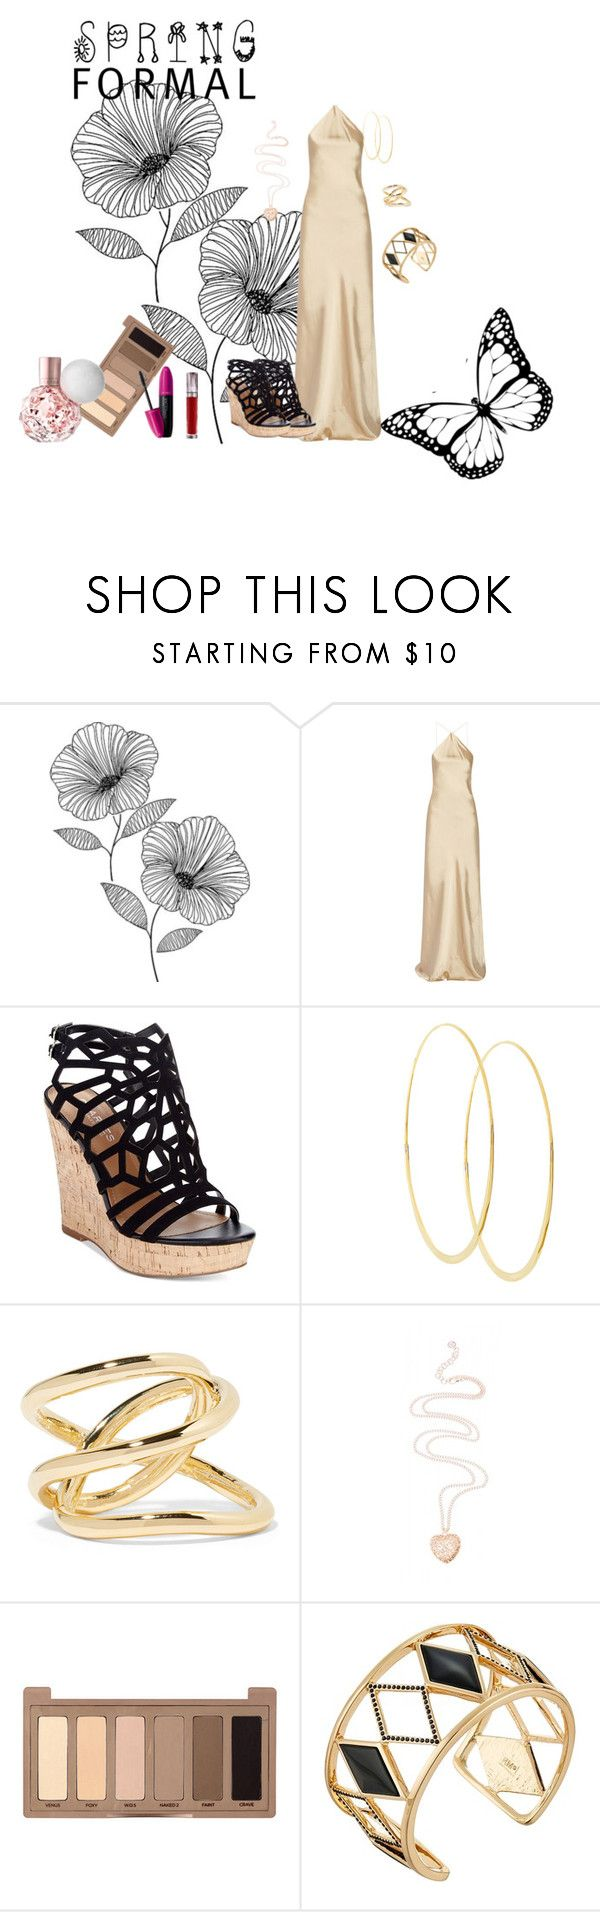 spring formal by kelly17-kalymnos on Polyvore featuring Calvin Klein Collection, Charles by Charles David, Rebecca Minkoff, Jennifer Fisher, Lana, Urban Decay, Revlon and Wall Pops!